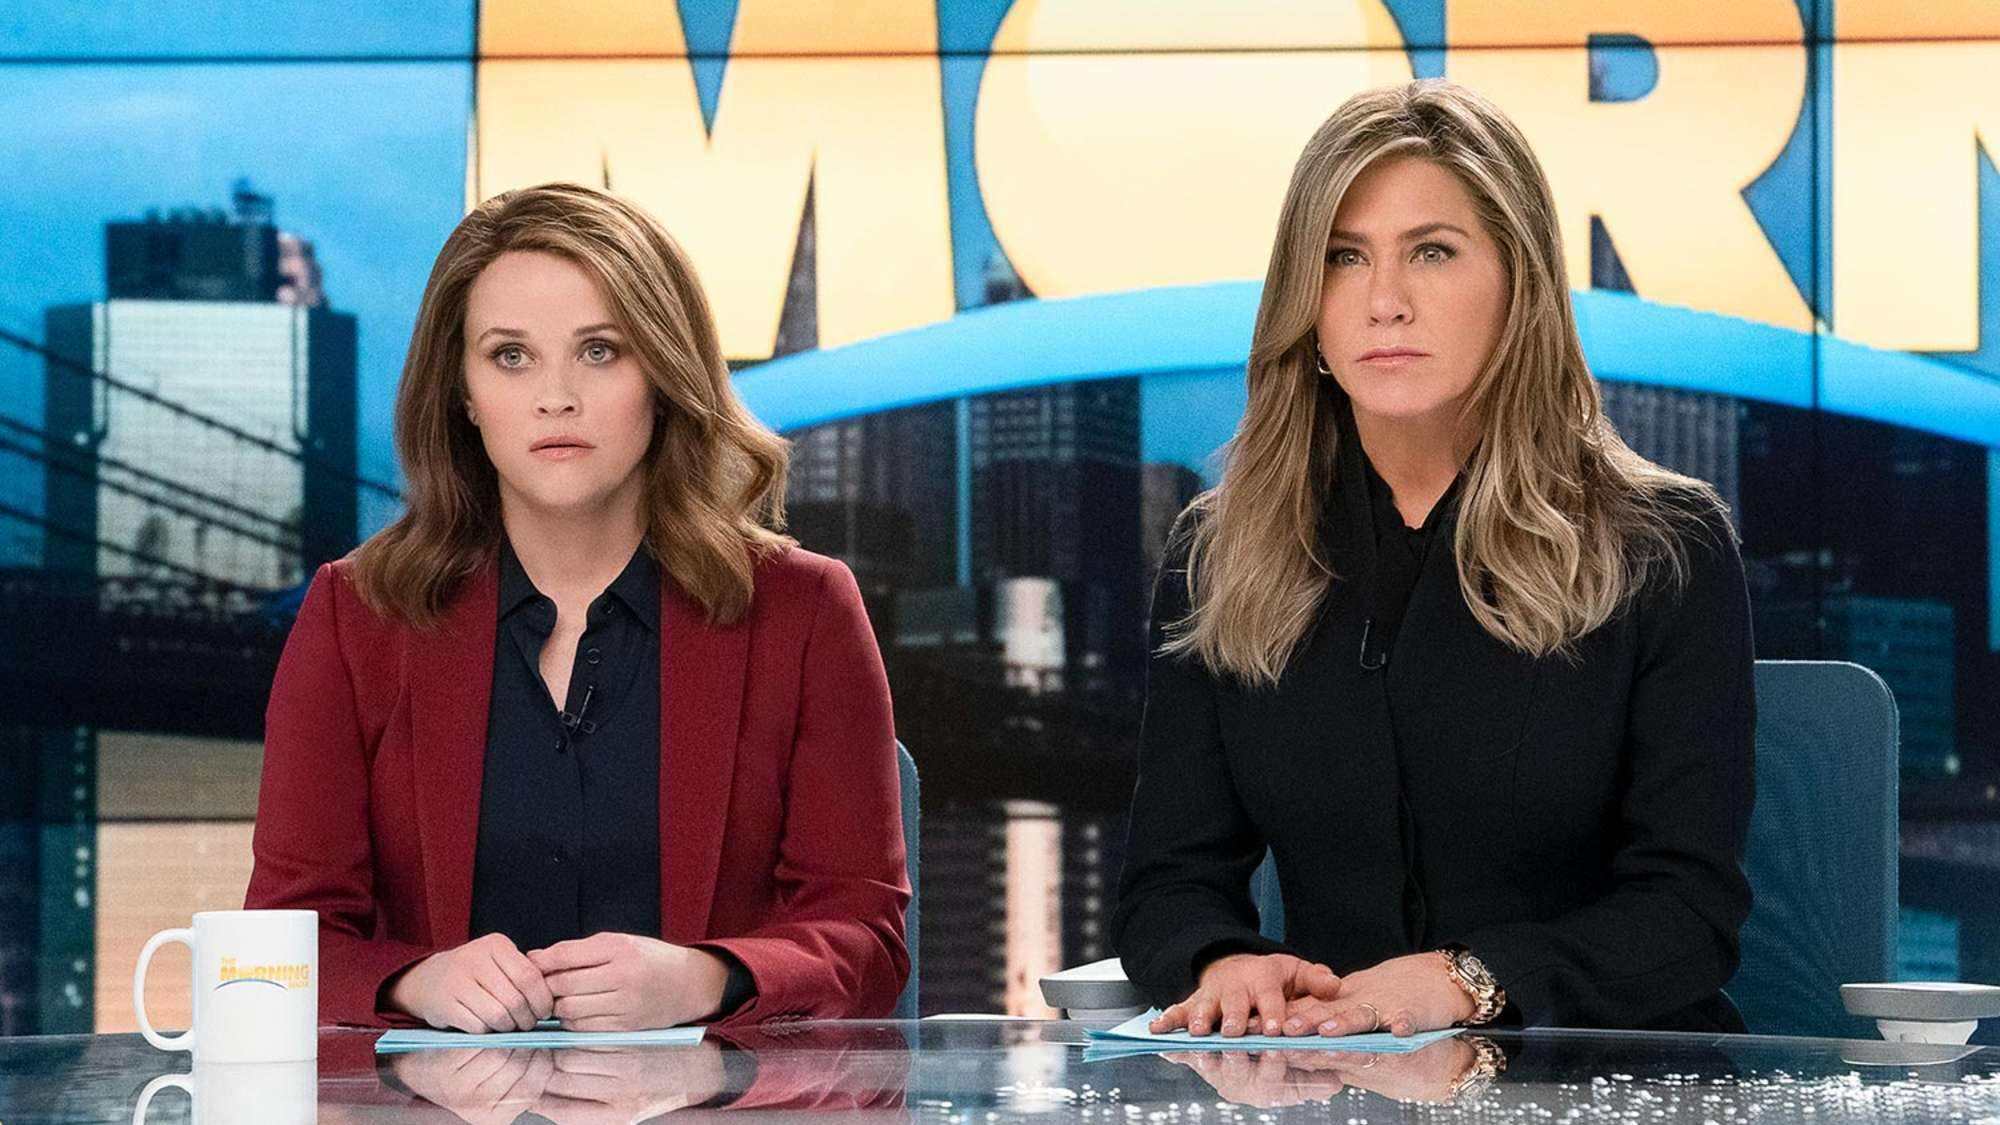 Why the 'The Morning Show' Is Part of a $44 Million Lawsuit